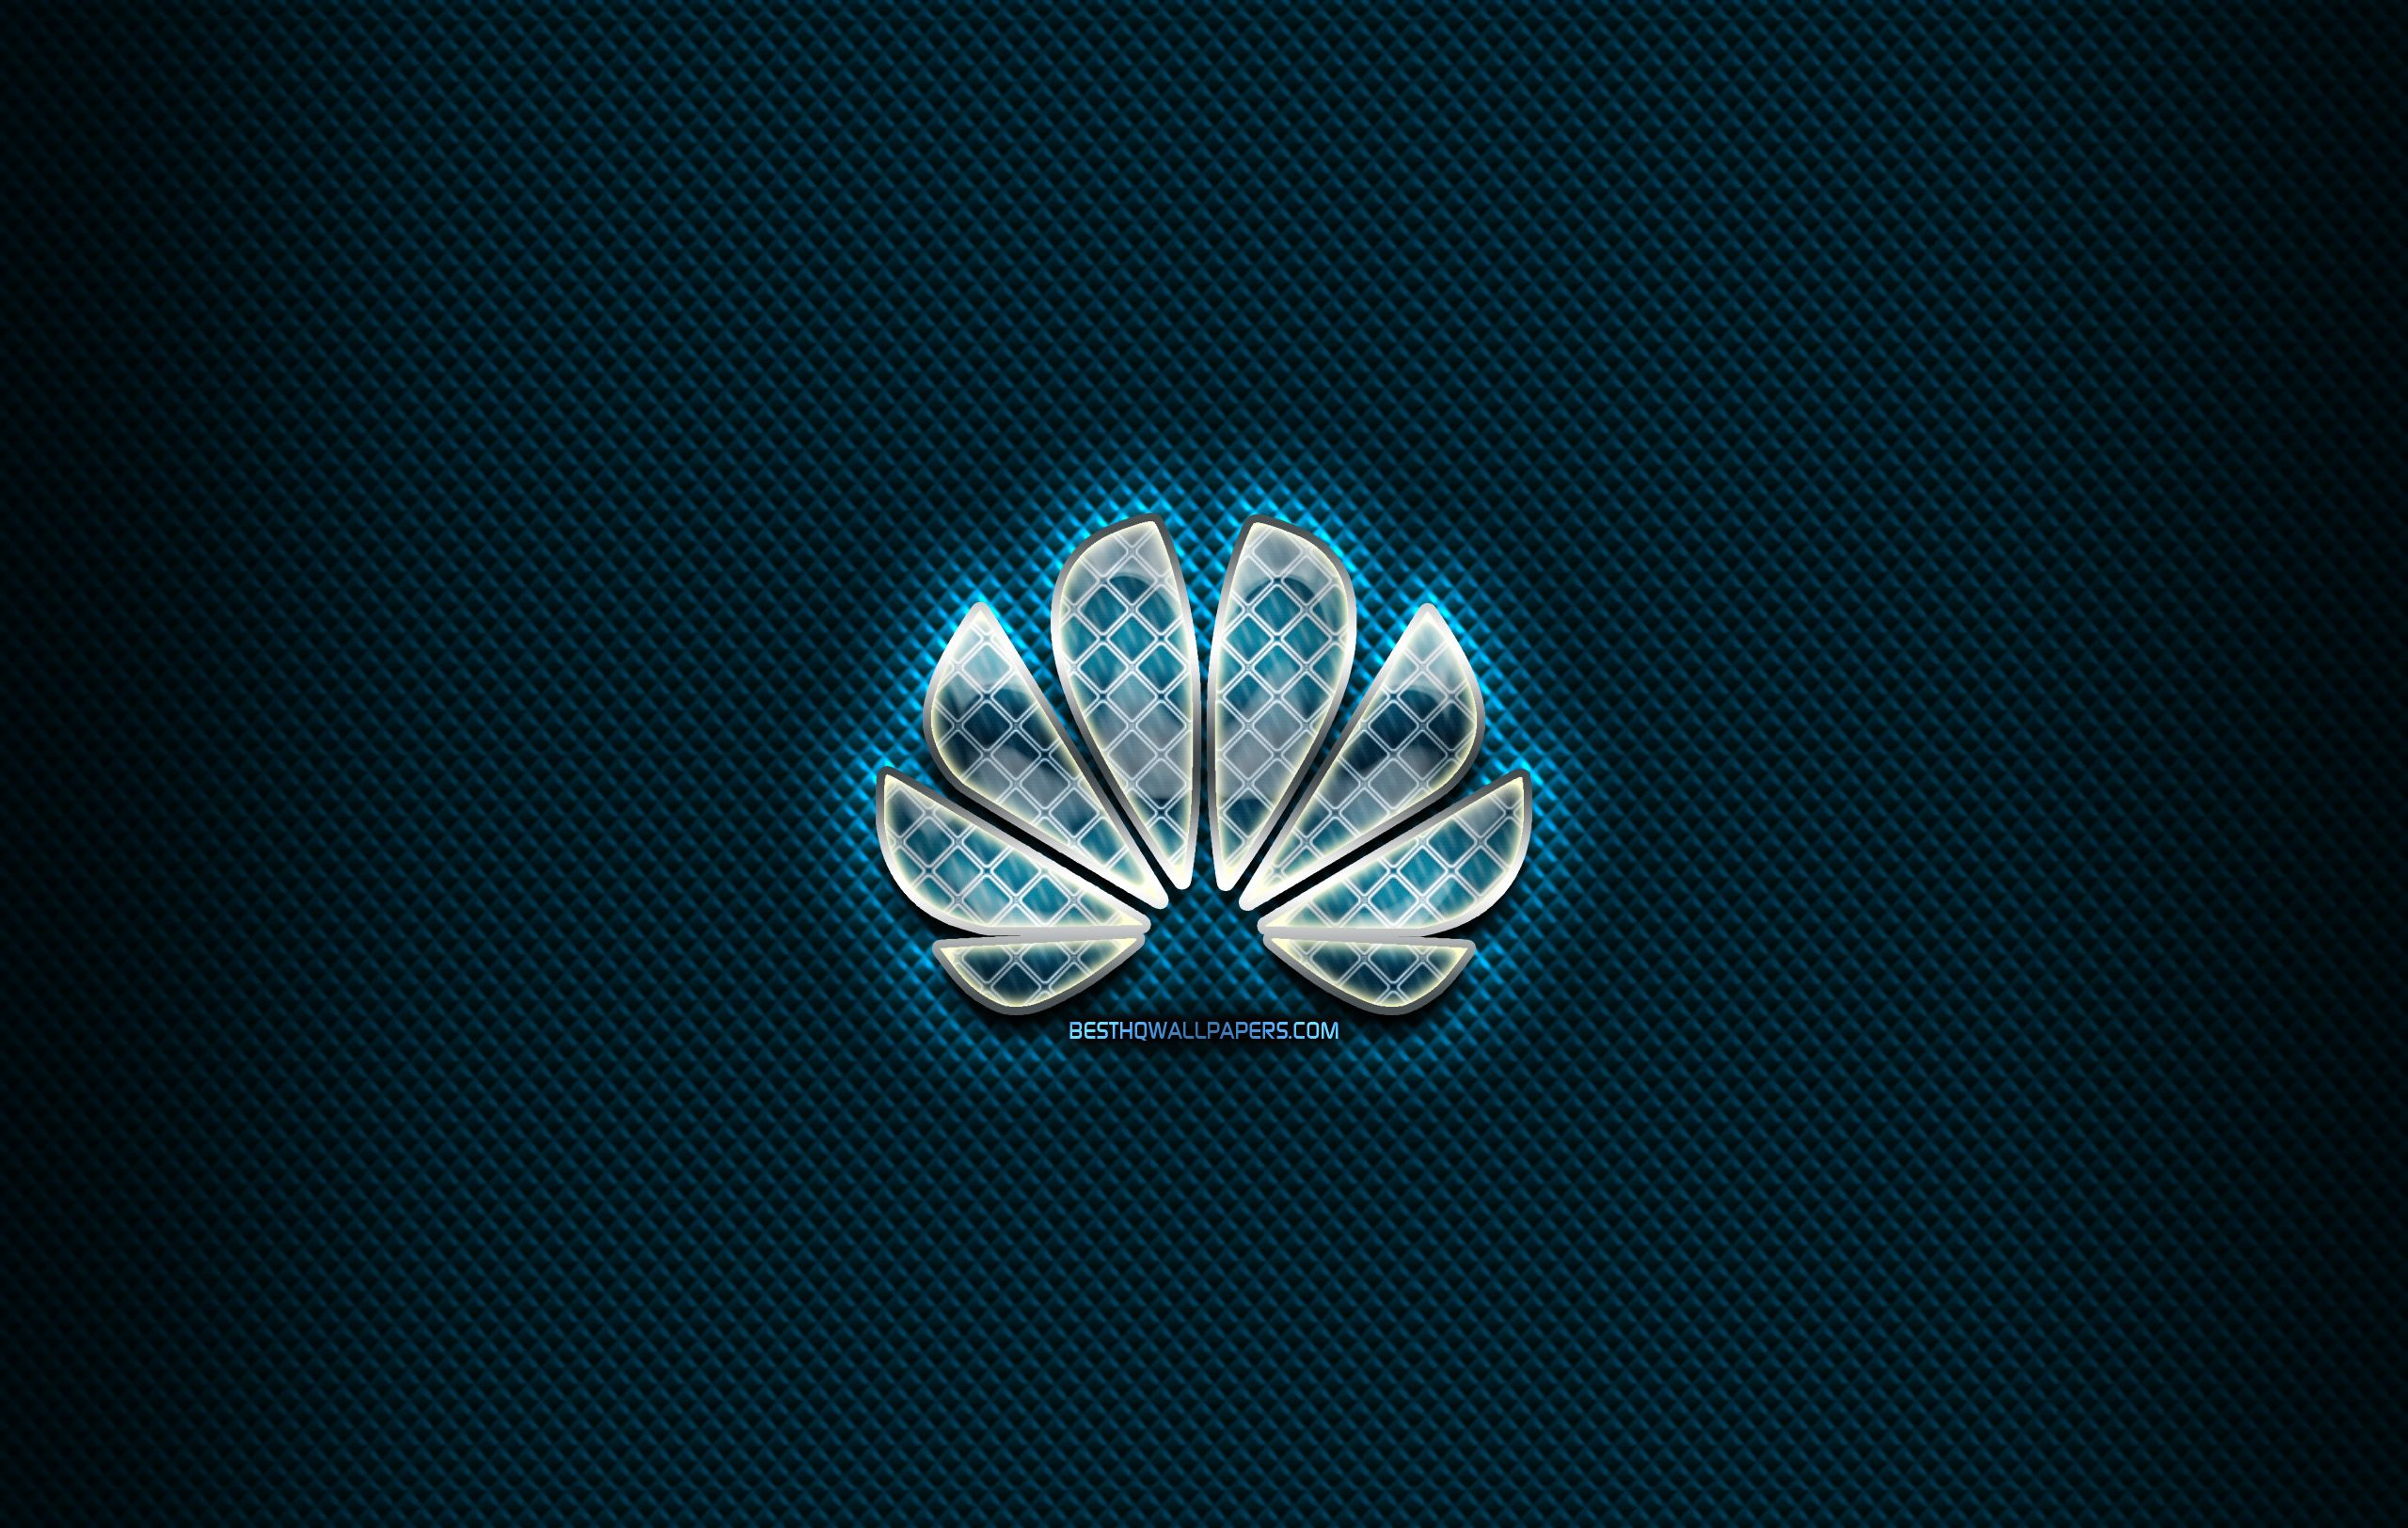 2560x1624 Download wallpapers Huawei glass logo, blue background ...